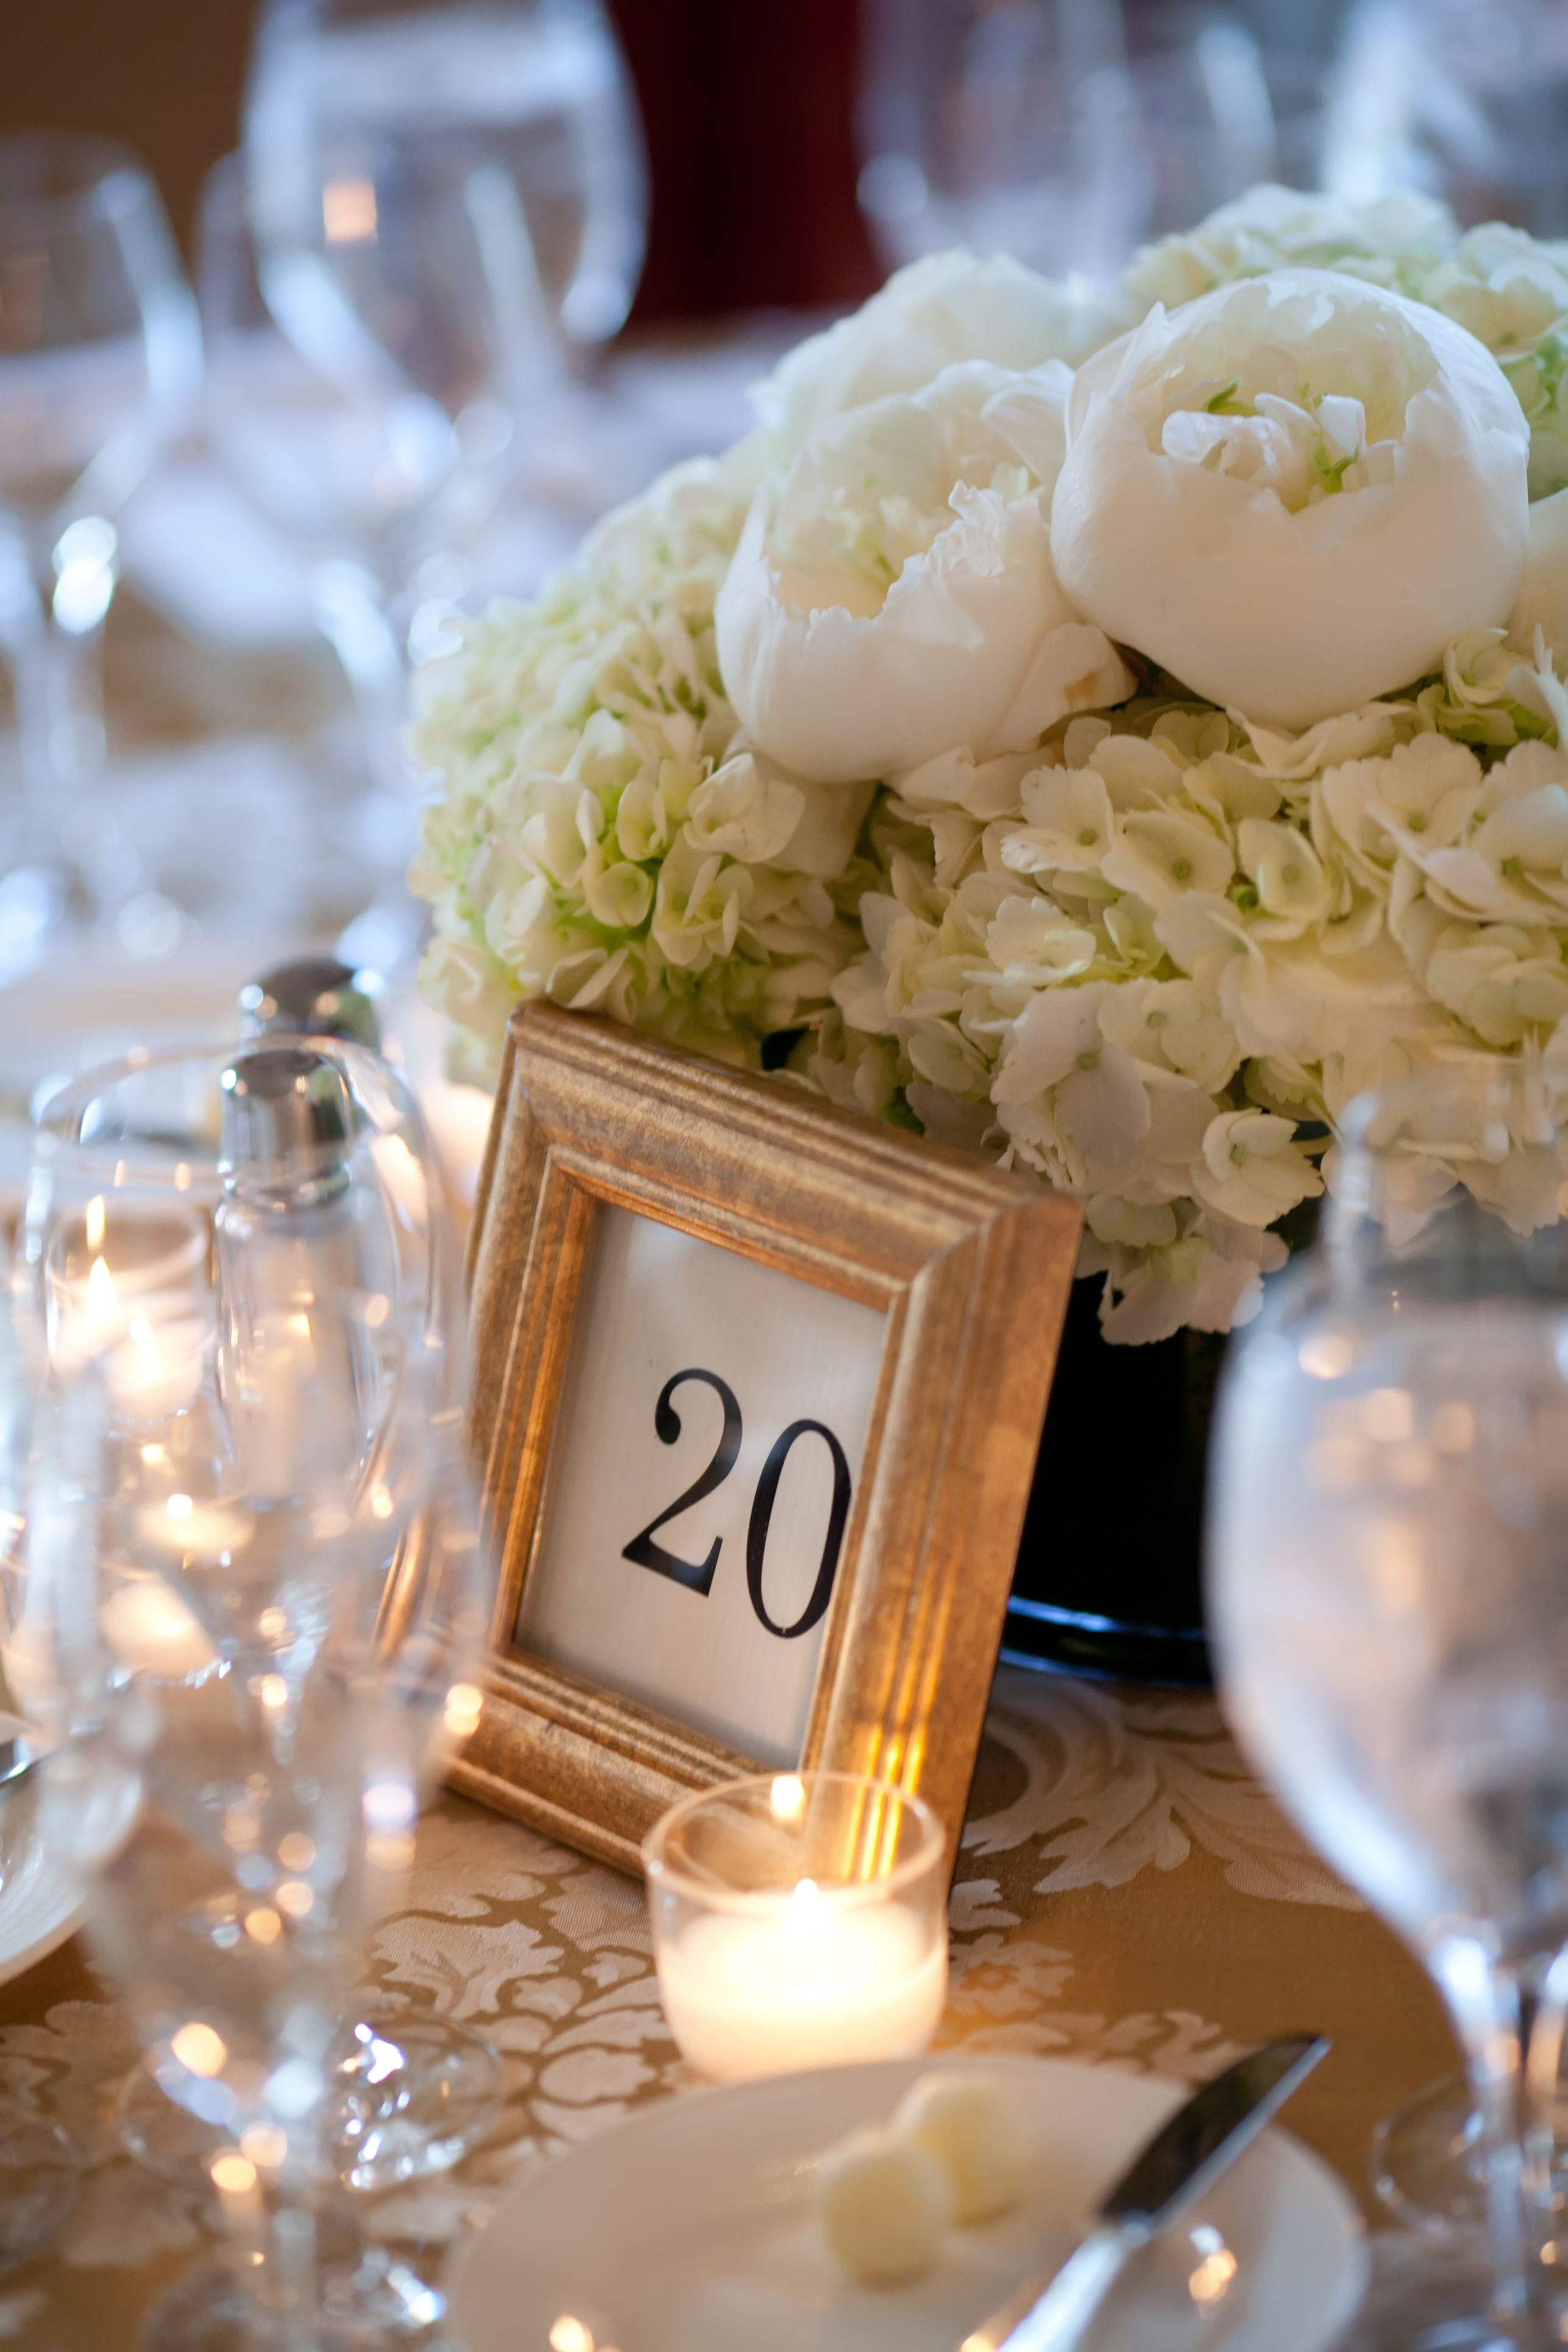 Wedding Table Decor: Gold & White. Picture frames for table ...